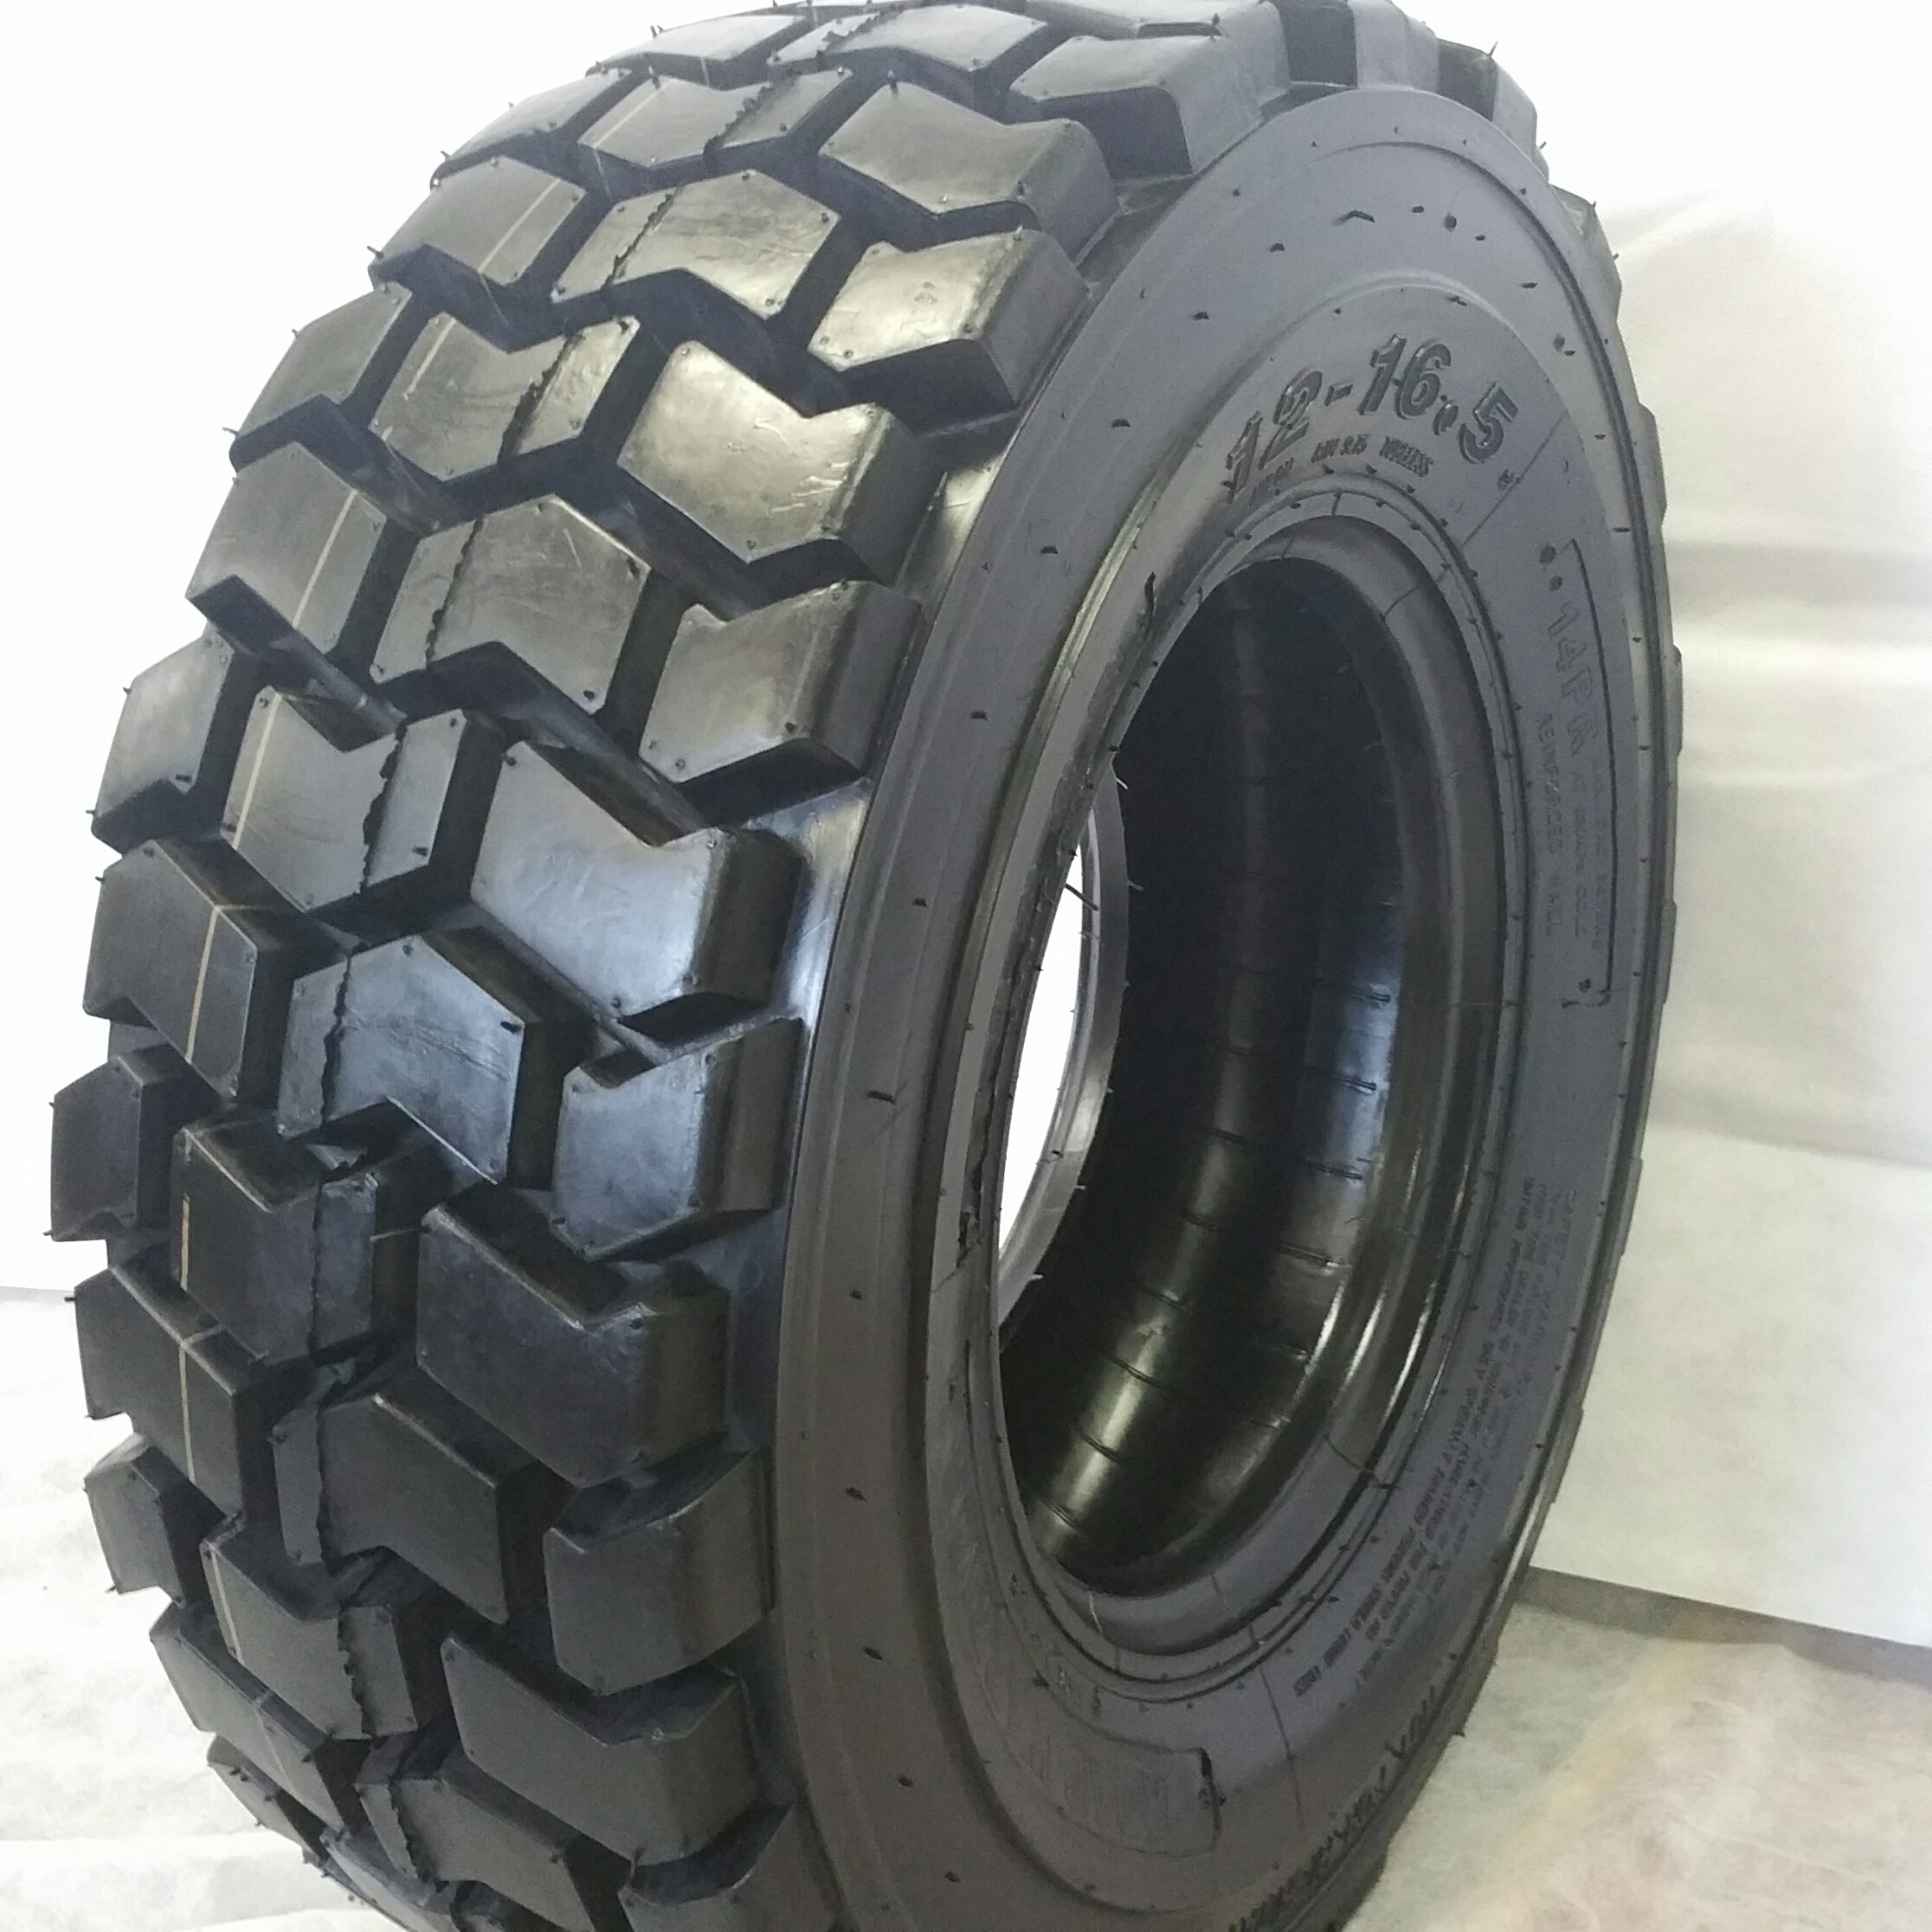 Truck Tires for Sale at Wholesale Prices 10-16.5 RS 102